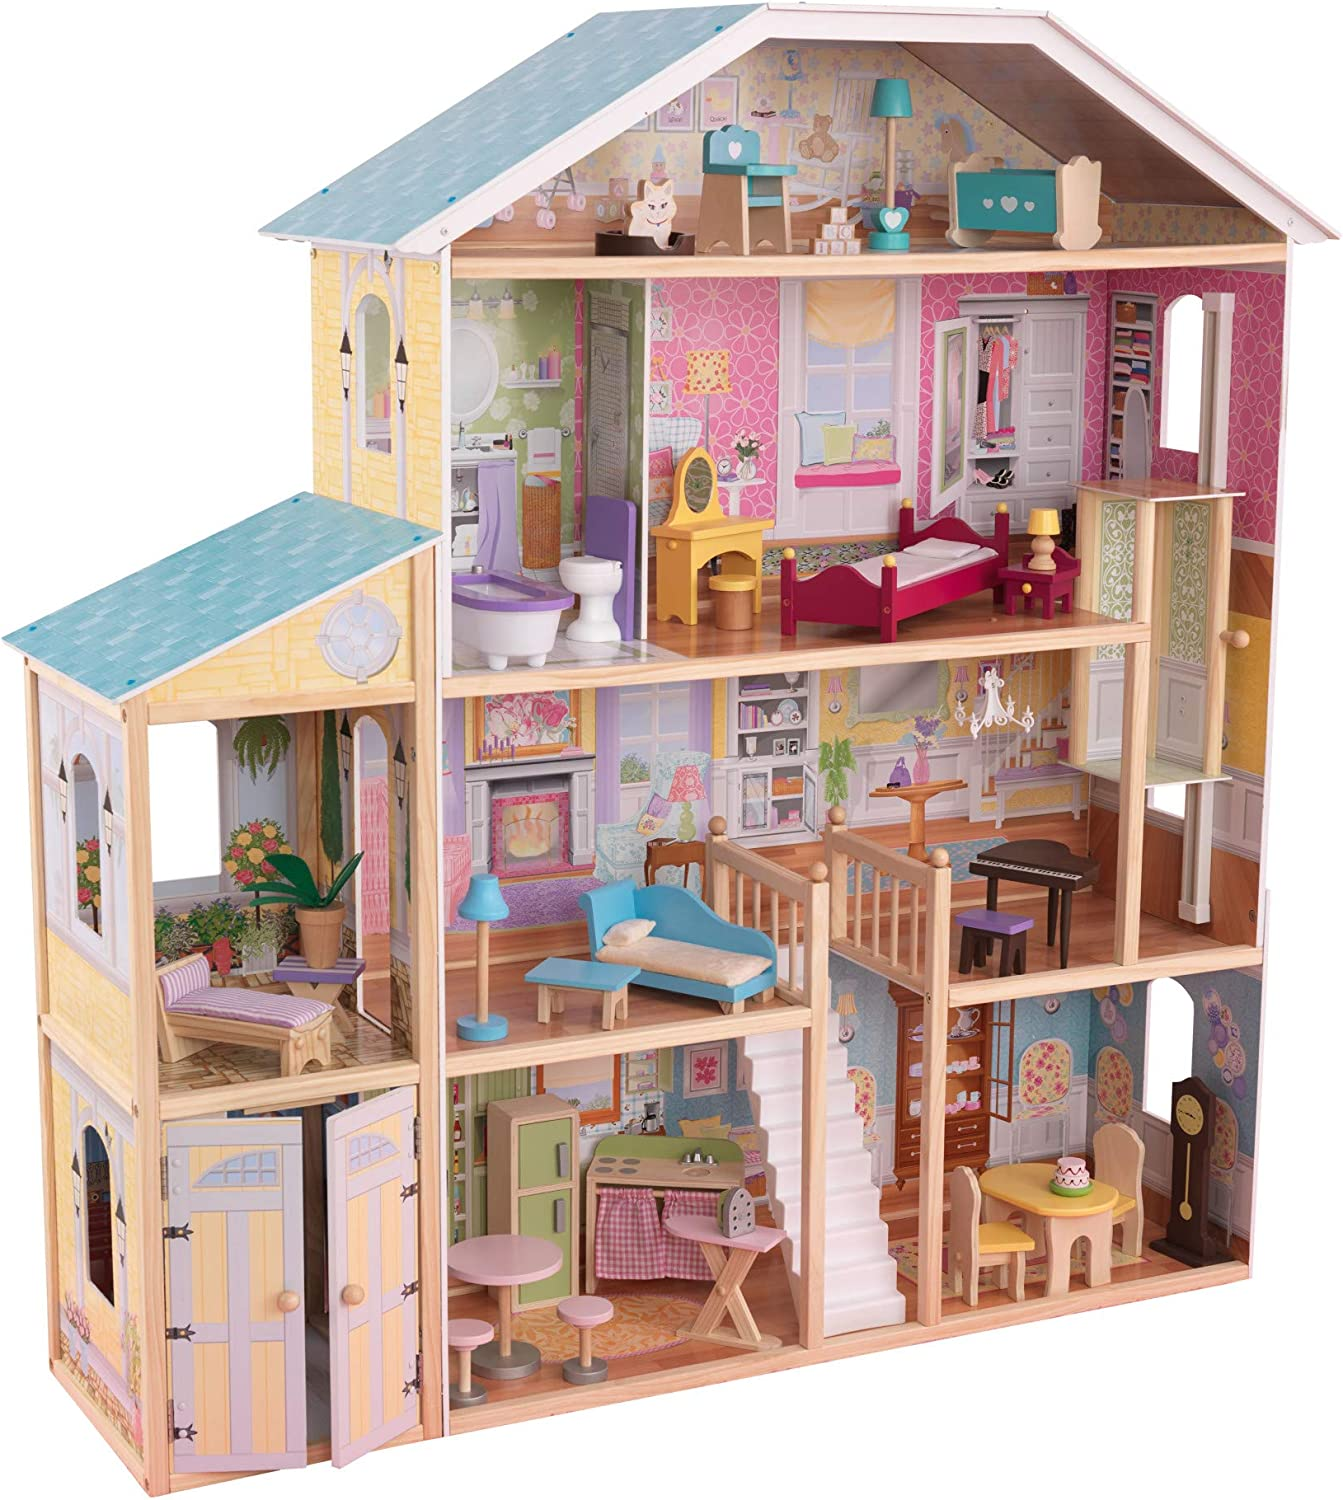 KidKraft 65252 Majestic Mansion Wooden Dolls House with Furniture and Accessories 45% OFF £119.99 @ Amazon